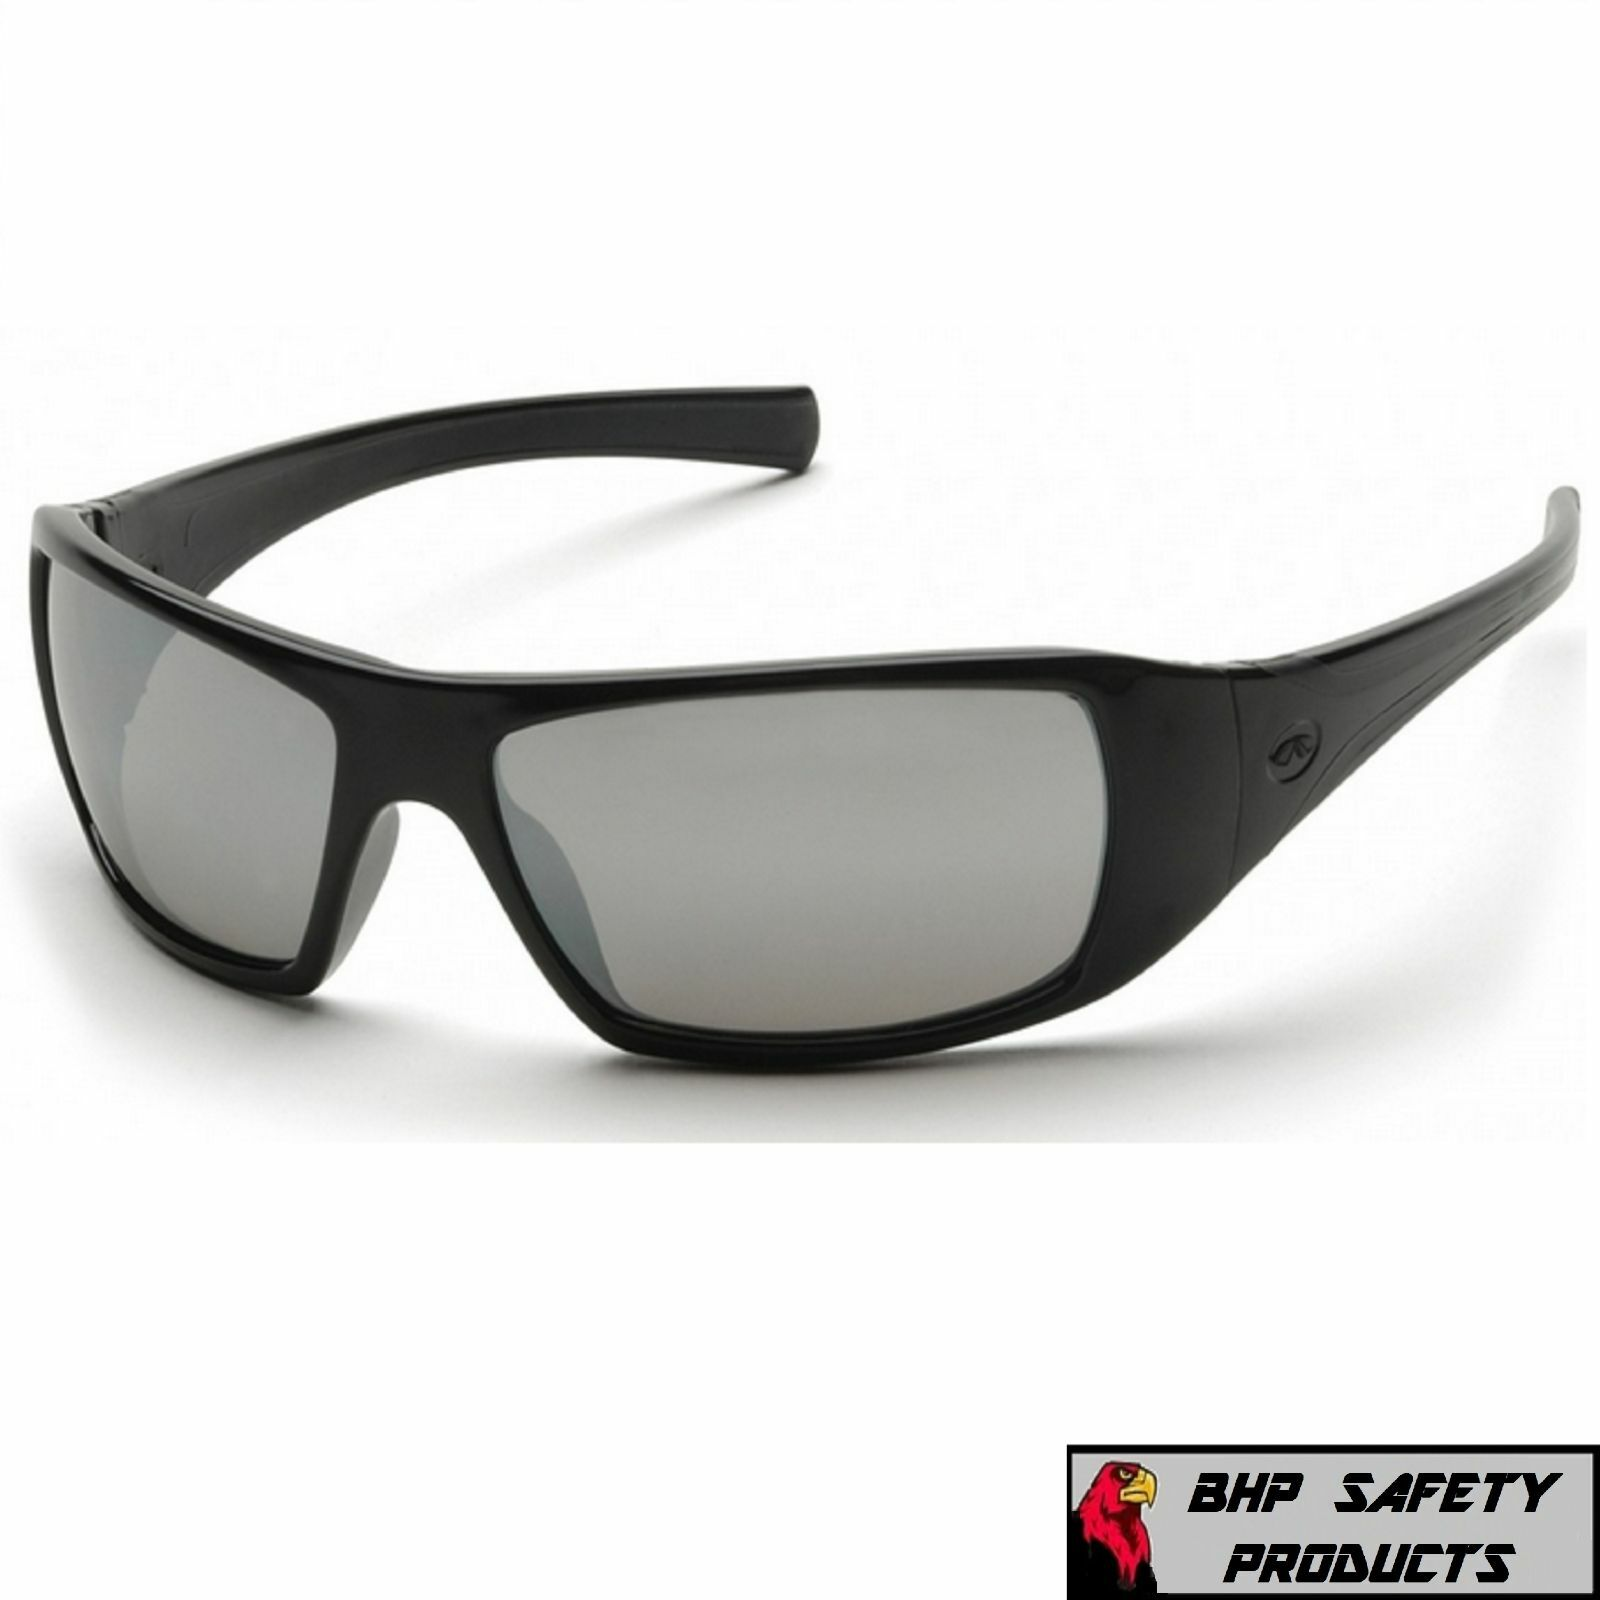 PYRAMEX GOLIATH SAFETY GLASSES MOTORCYCLE SPORT WORK SUNGLASSES Z87+ (1 PAIR) Silver Mirror Lens/ Black Frame SB5670D